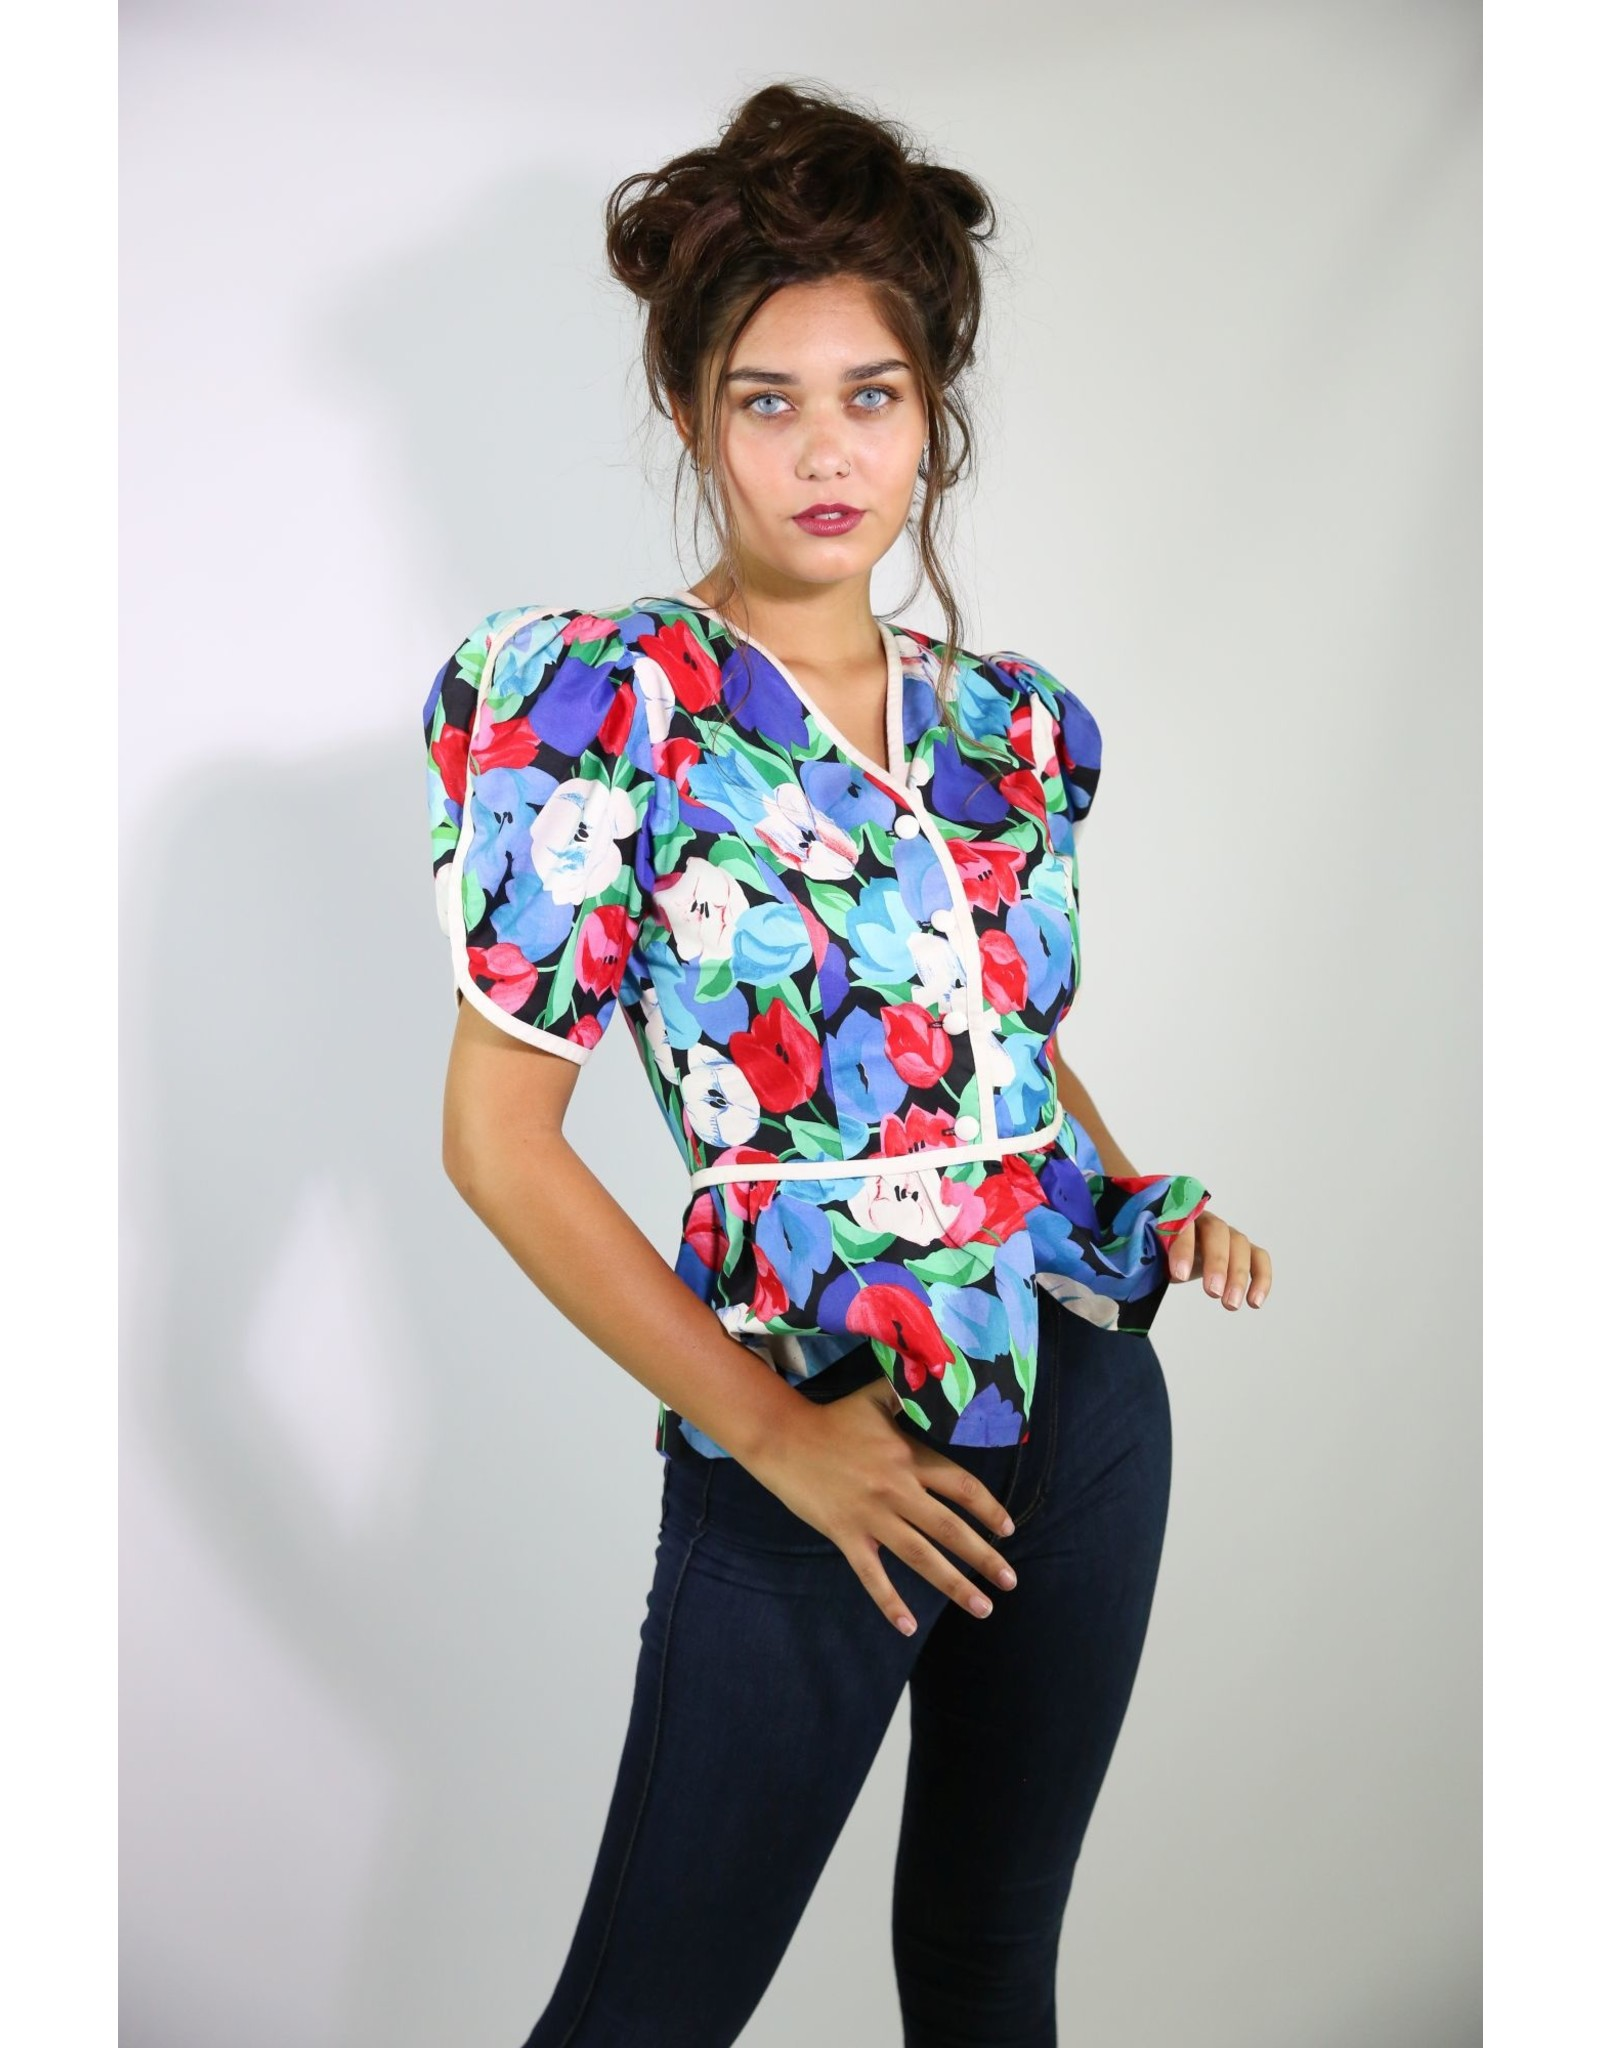 1980's Puff Sleeve Floral Top